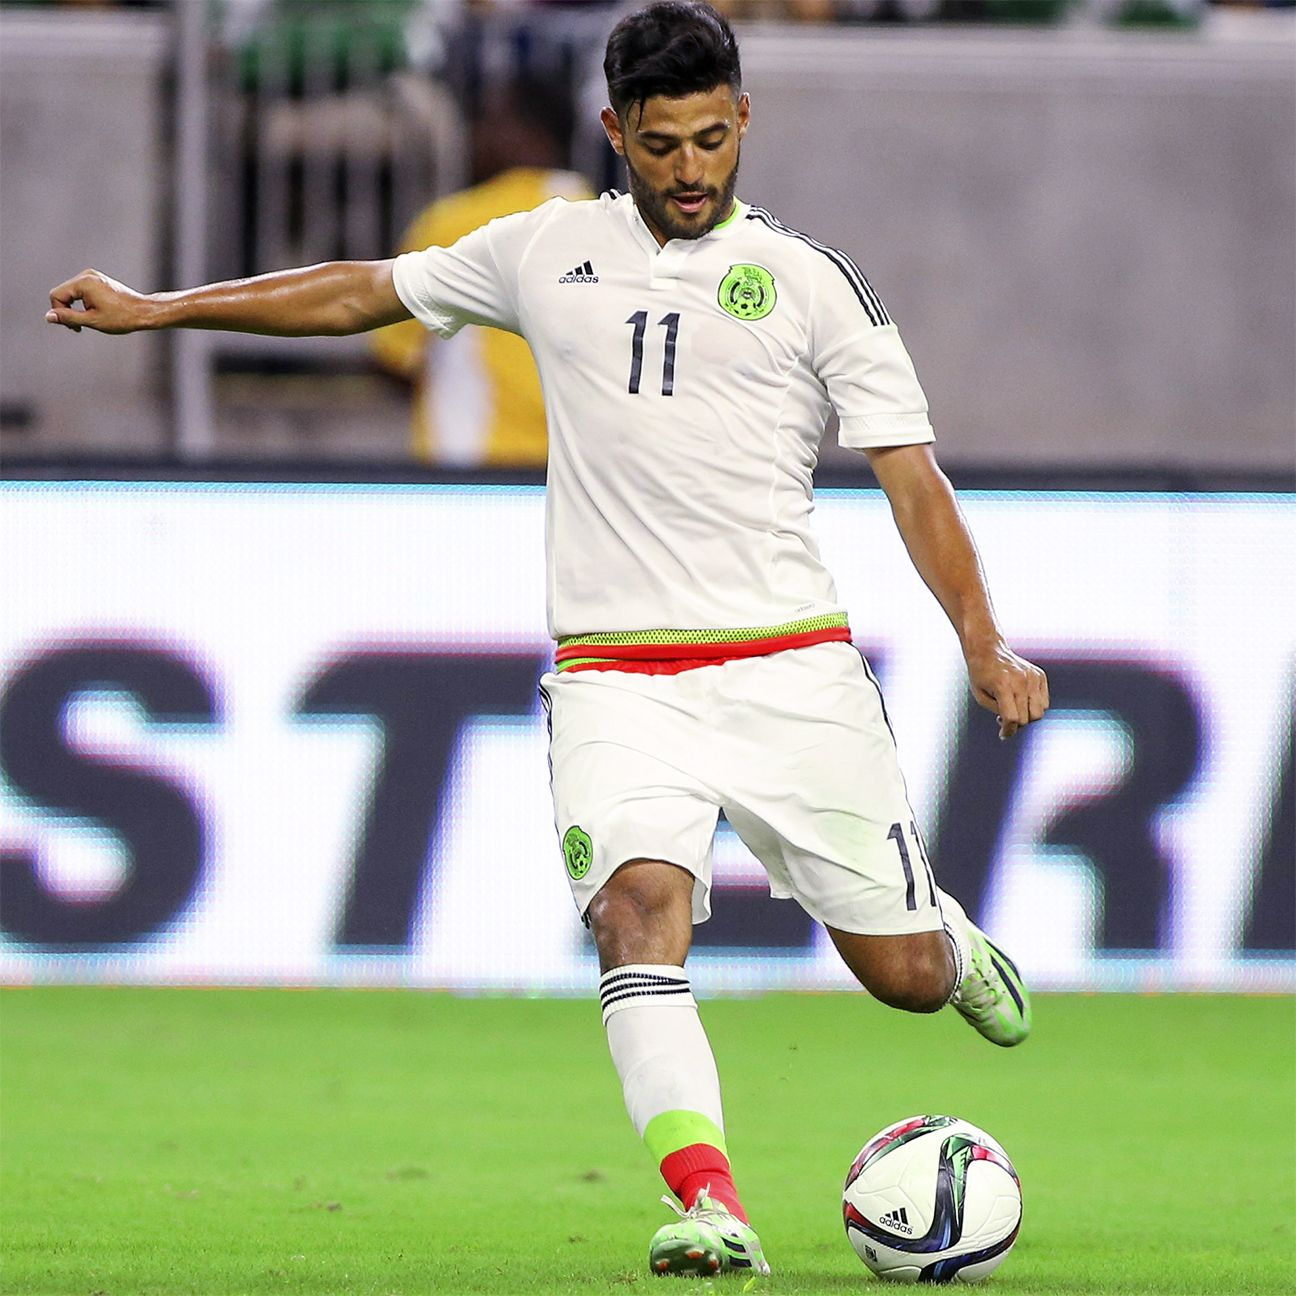 Outside of Carlos Vela's two shots off the post in the first half, Mexico offered very little in attack against the Hondurans.